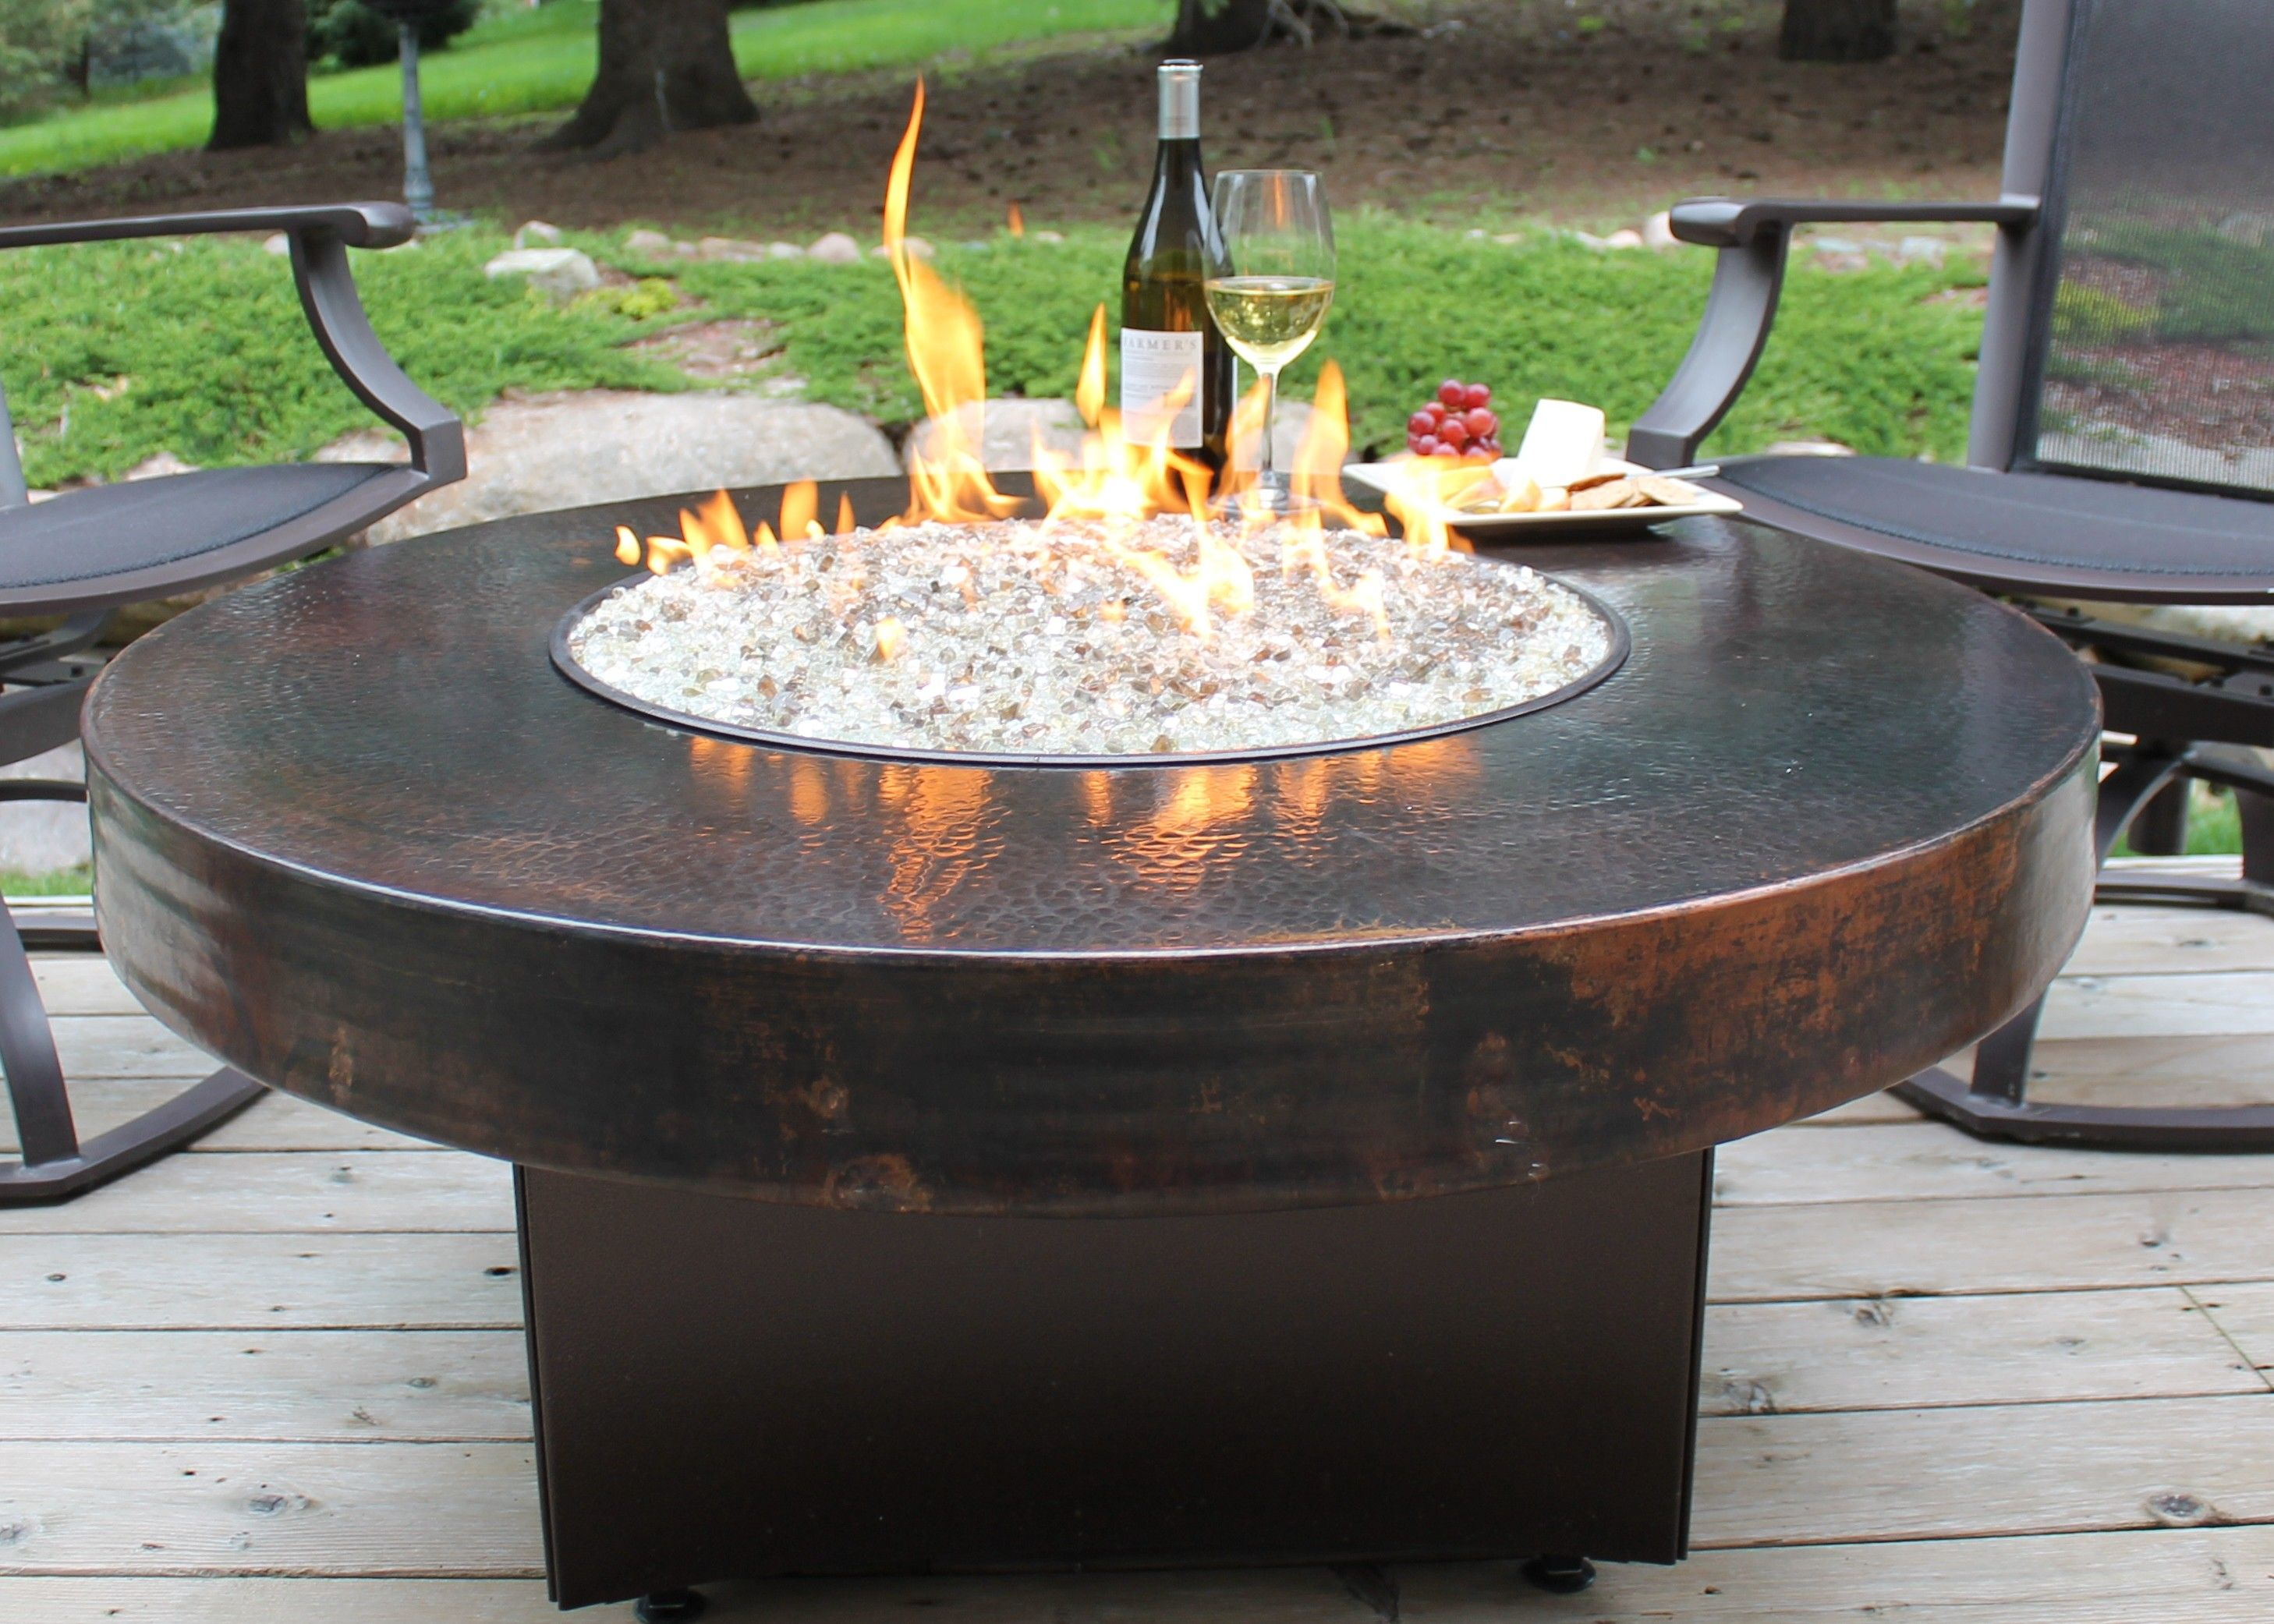 Oriflamme Gas Fire Pit Table Hammered Copper Somber Outdoor intended for size 2916 X 2083